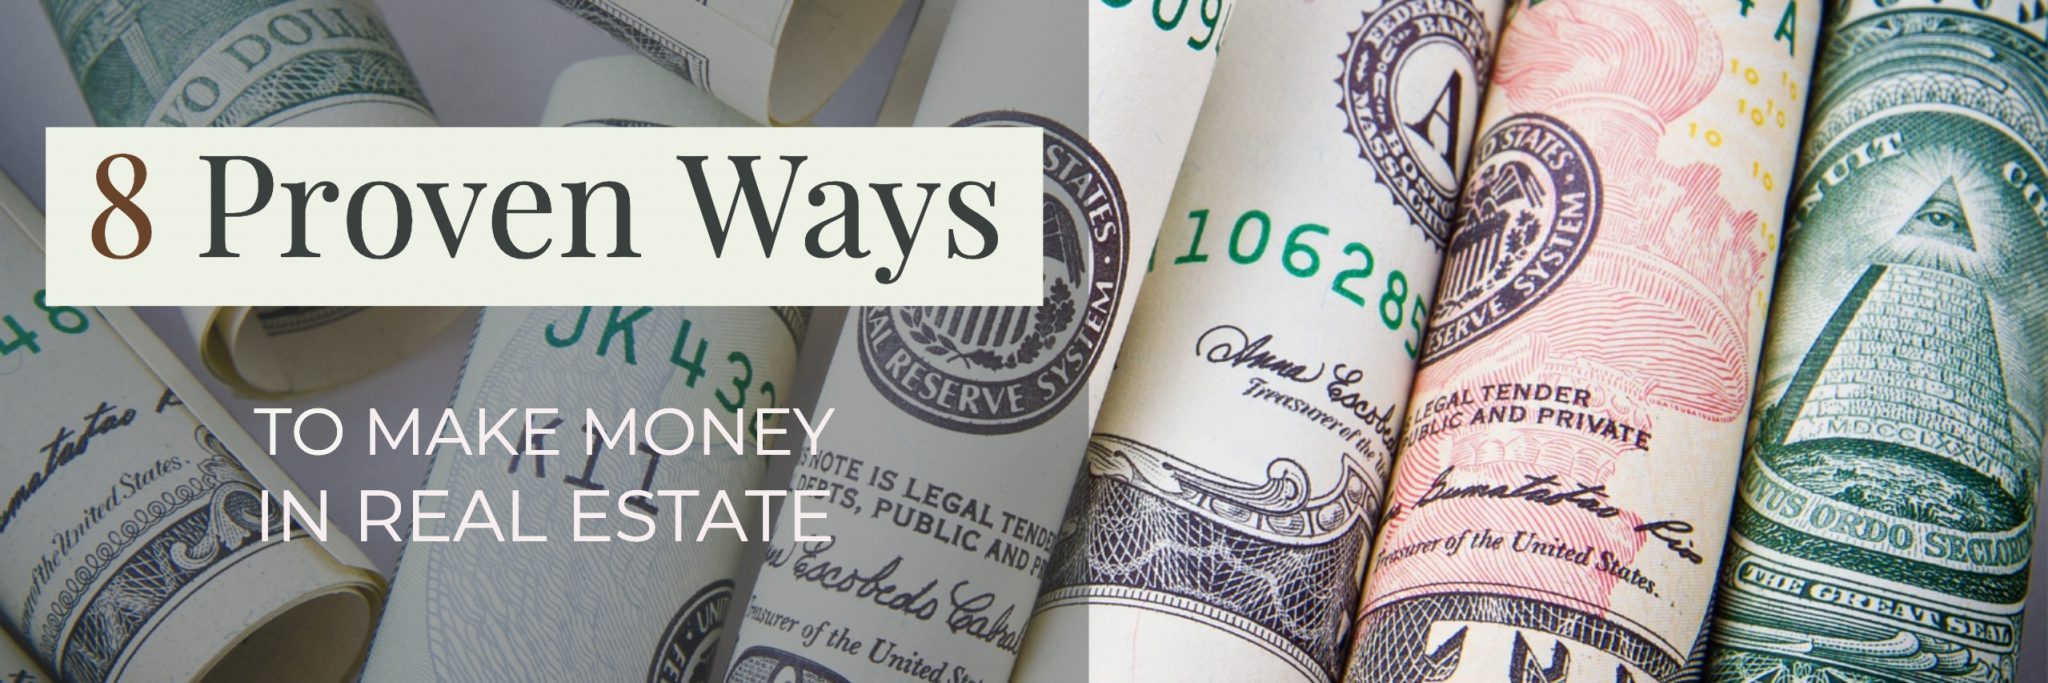 8 Proven Ways to Make Money in Real Estate